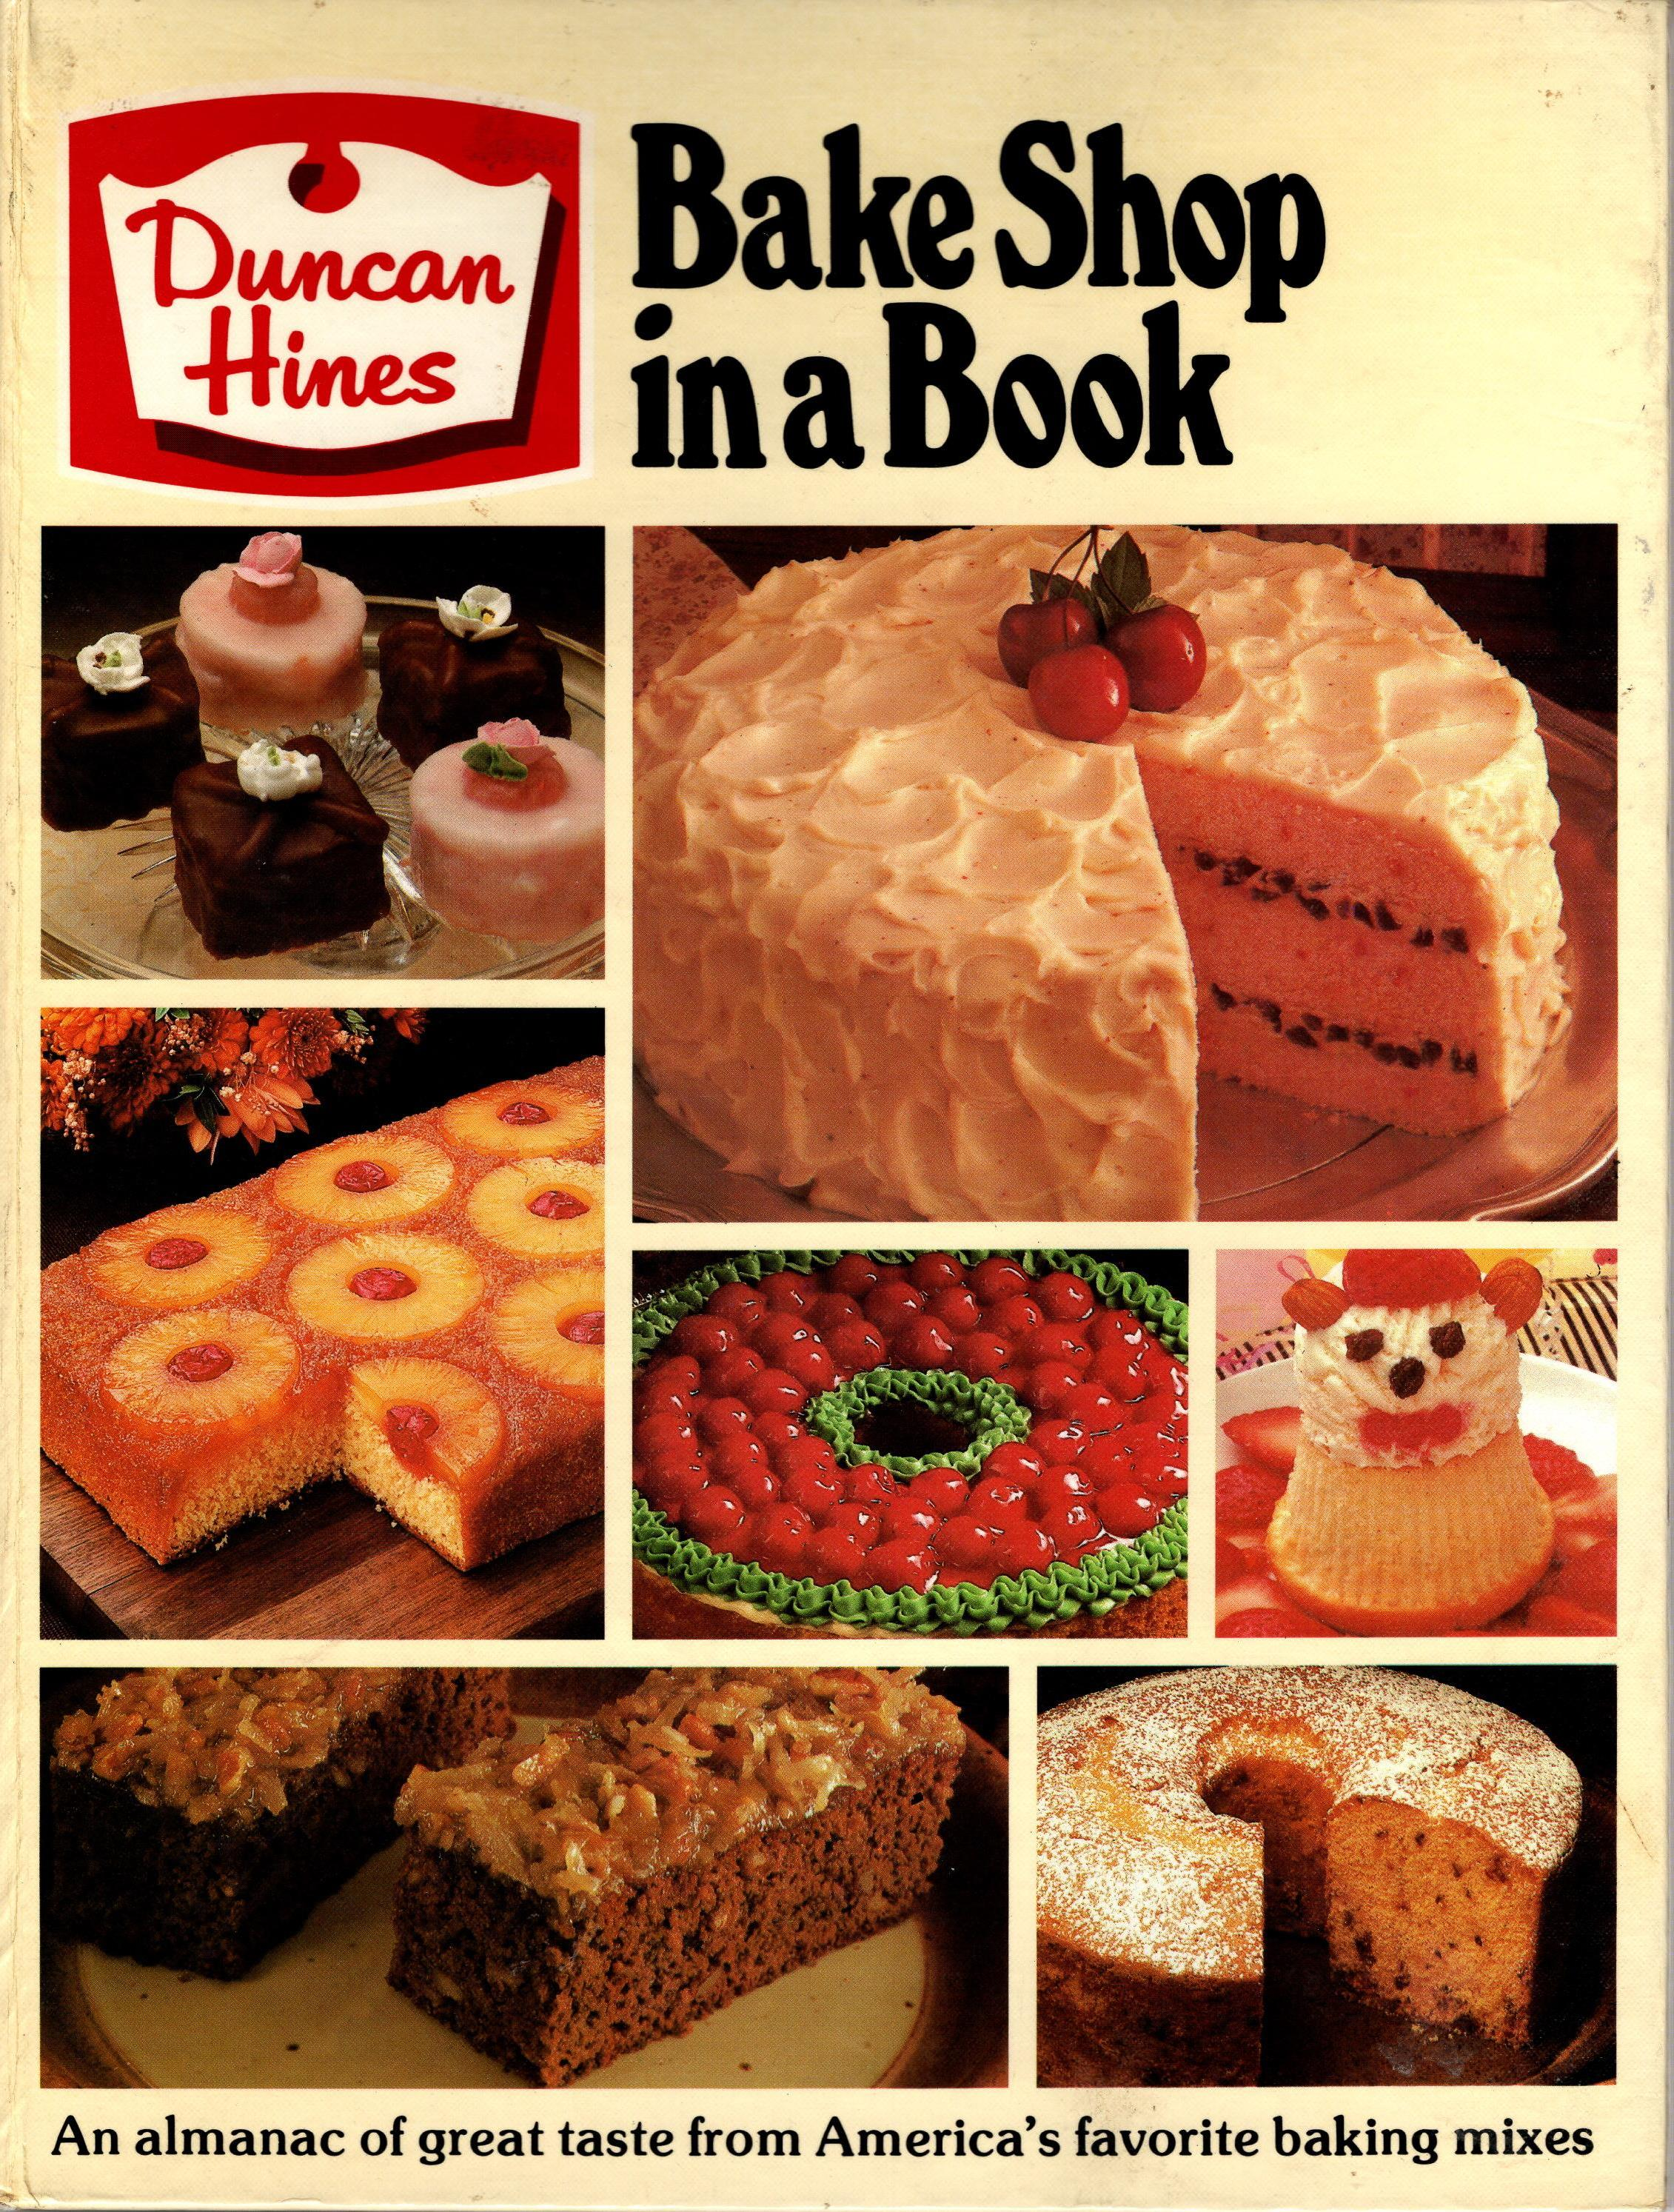 Image for DUNCAN HINES BAKE SHOP IN A BOOK